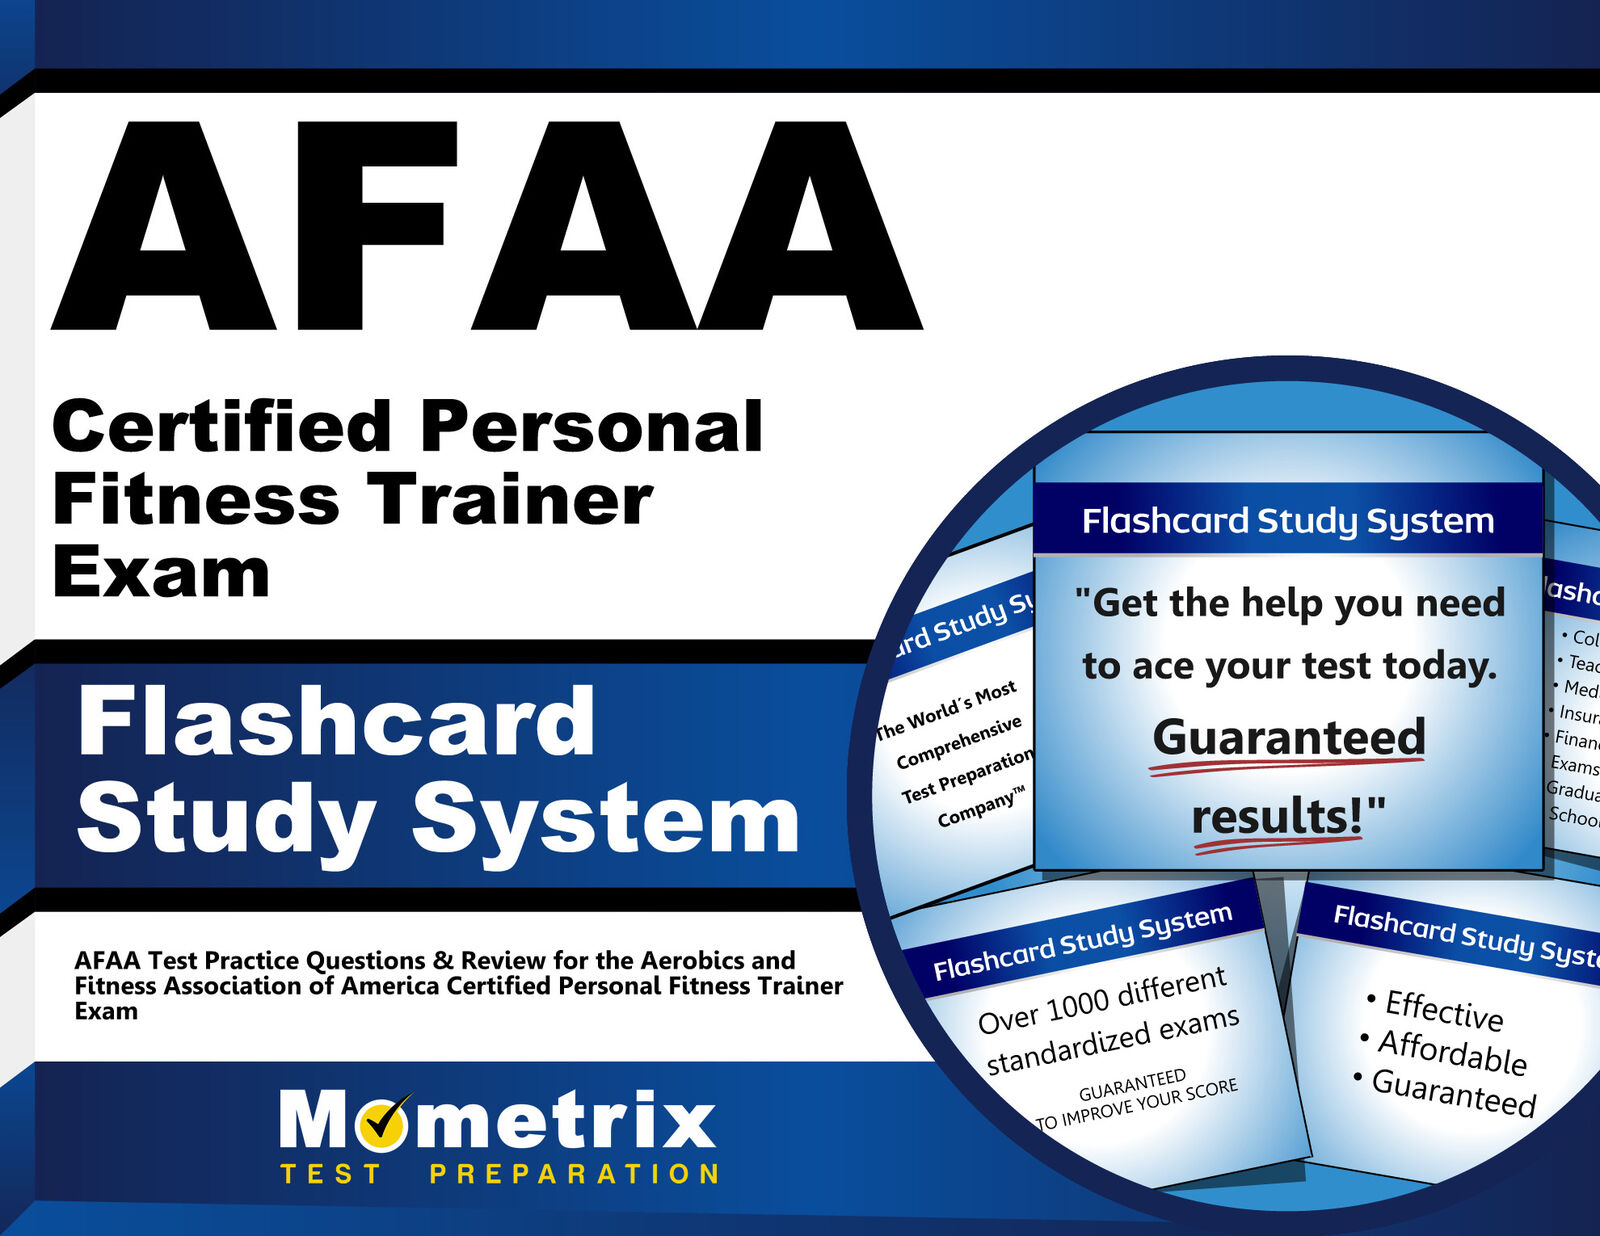 Afaa Certified Personal Fitness Trainer Exam Flashcard Study System